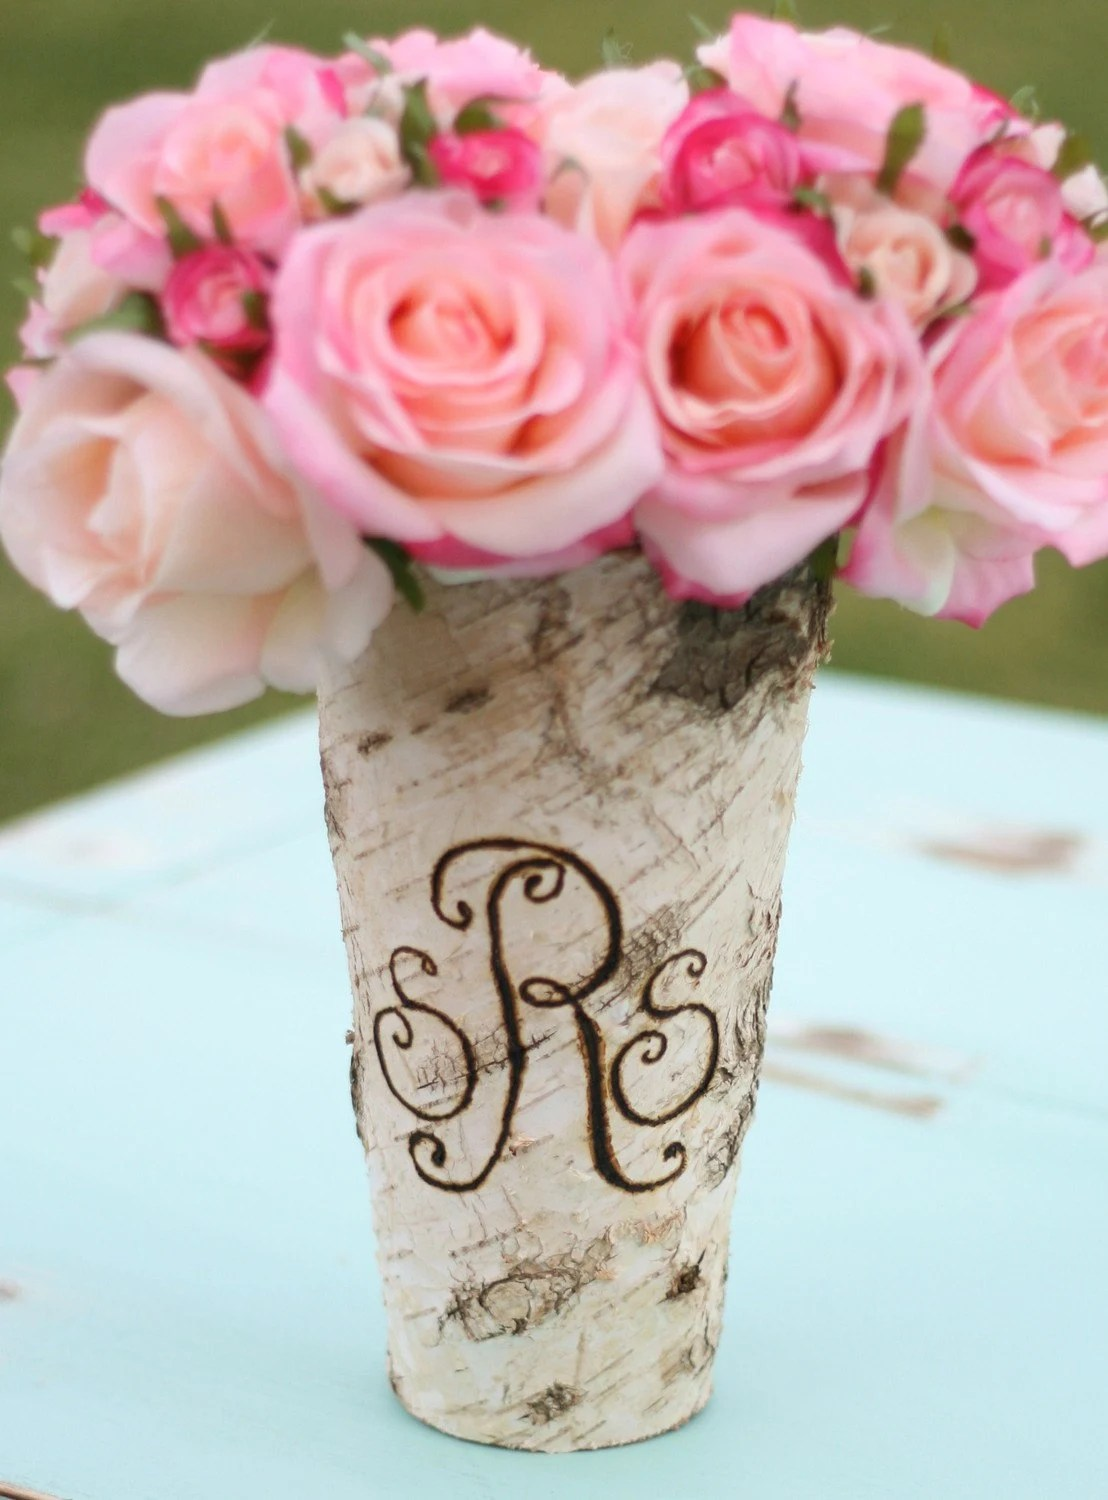 Personalized Custom Engraved Monogrammed Tall Birch Bark Wood Vase Valentines Day Gift spring summer  Dinner Party Centerpiece Hostess Gift Rustic Beach Lake Cottage Natural Modern Home Decor Wood Symbolizes 5 and 6 Anniversary Wedding Decoration